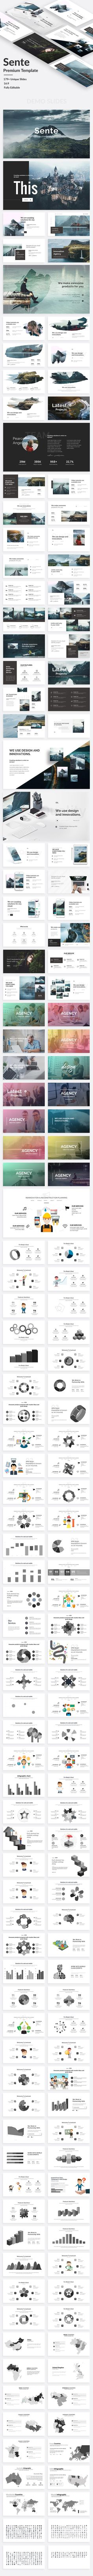 Sente Premium Design Powerpoint Template #retina #business • Download ➝ https://graphicriver.net/item/sente-premium-design-powerpoint-template/21349987?ref=pxcr